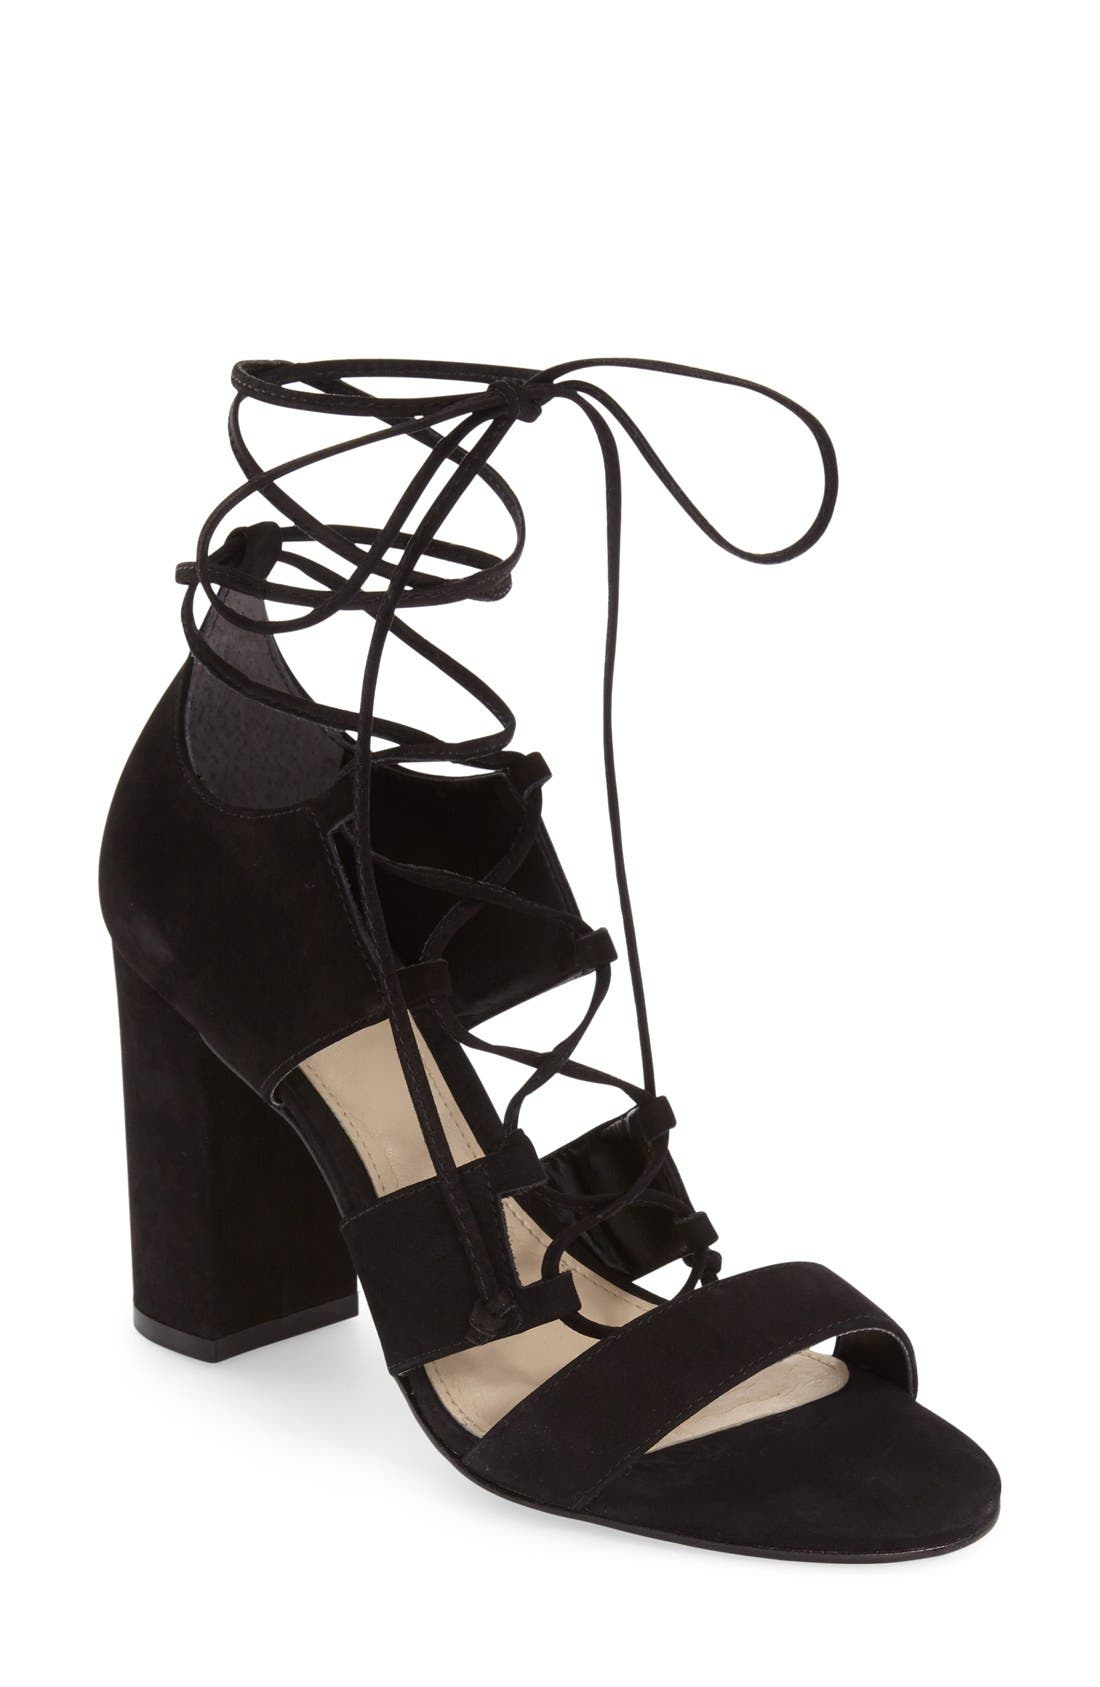 VINCE CAMUTO, 'Wendell' Block Heel Ghillie Sandal, Main thumbnail 1, color, 001